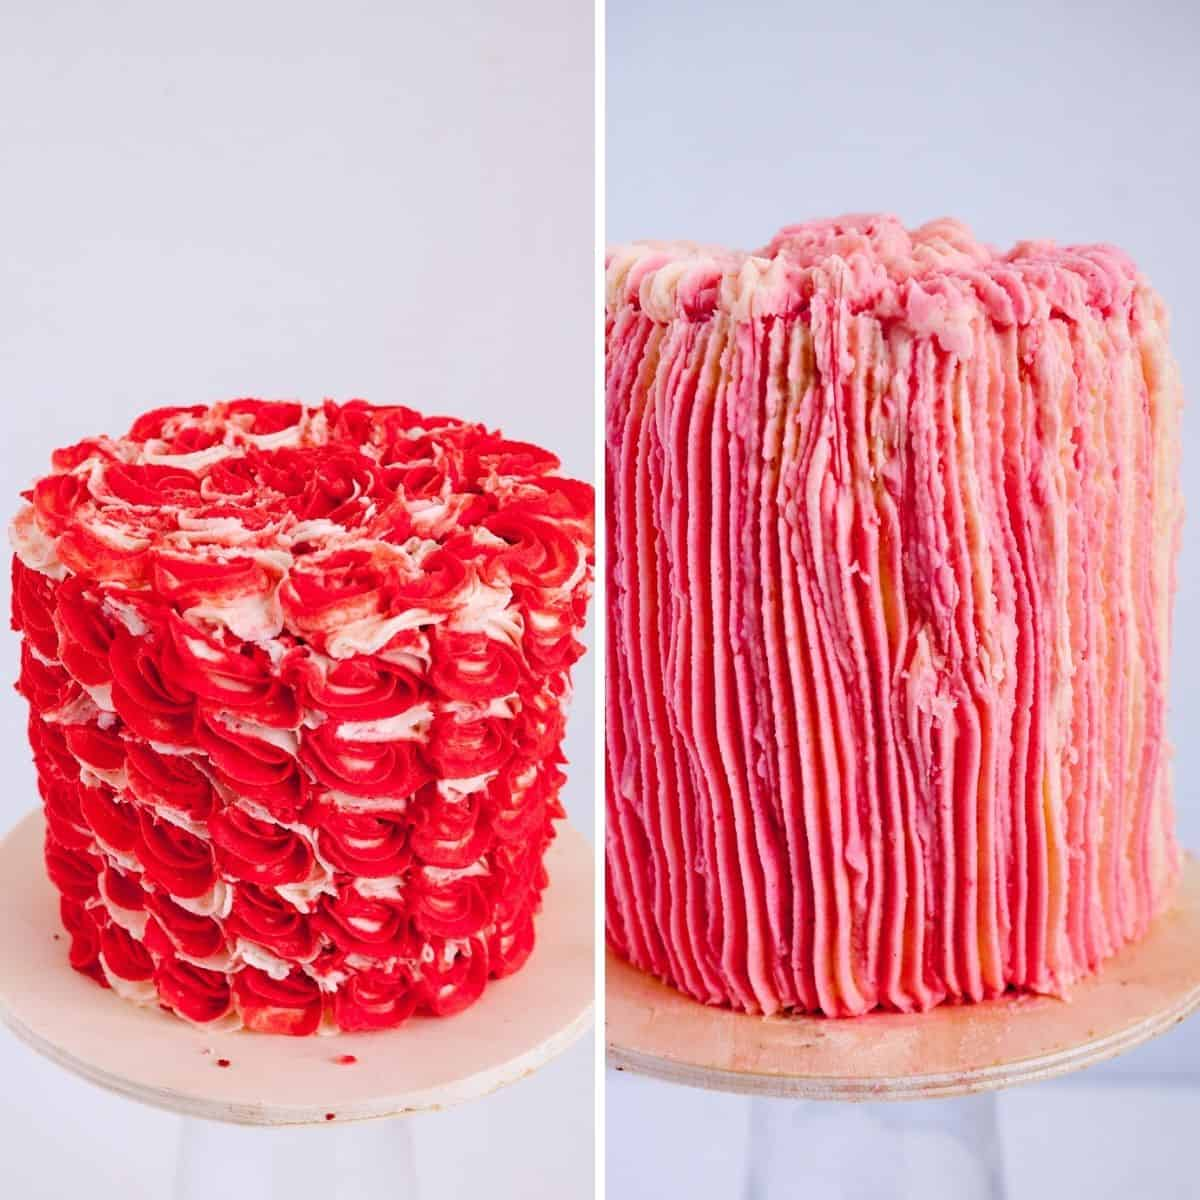 Cakes frosted with Italian Frosting.